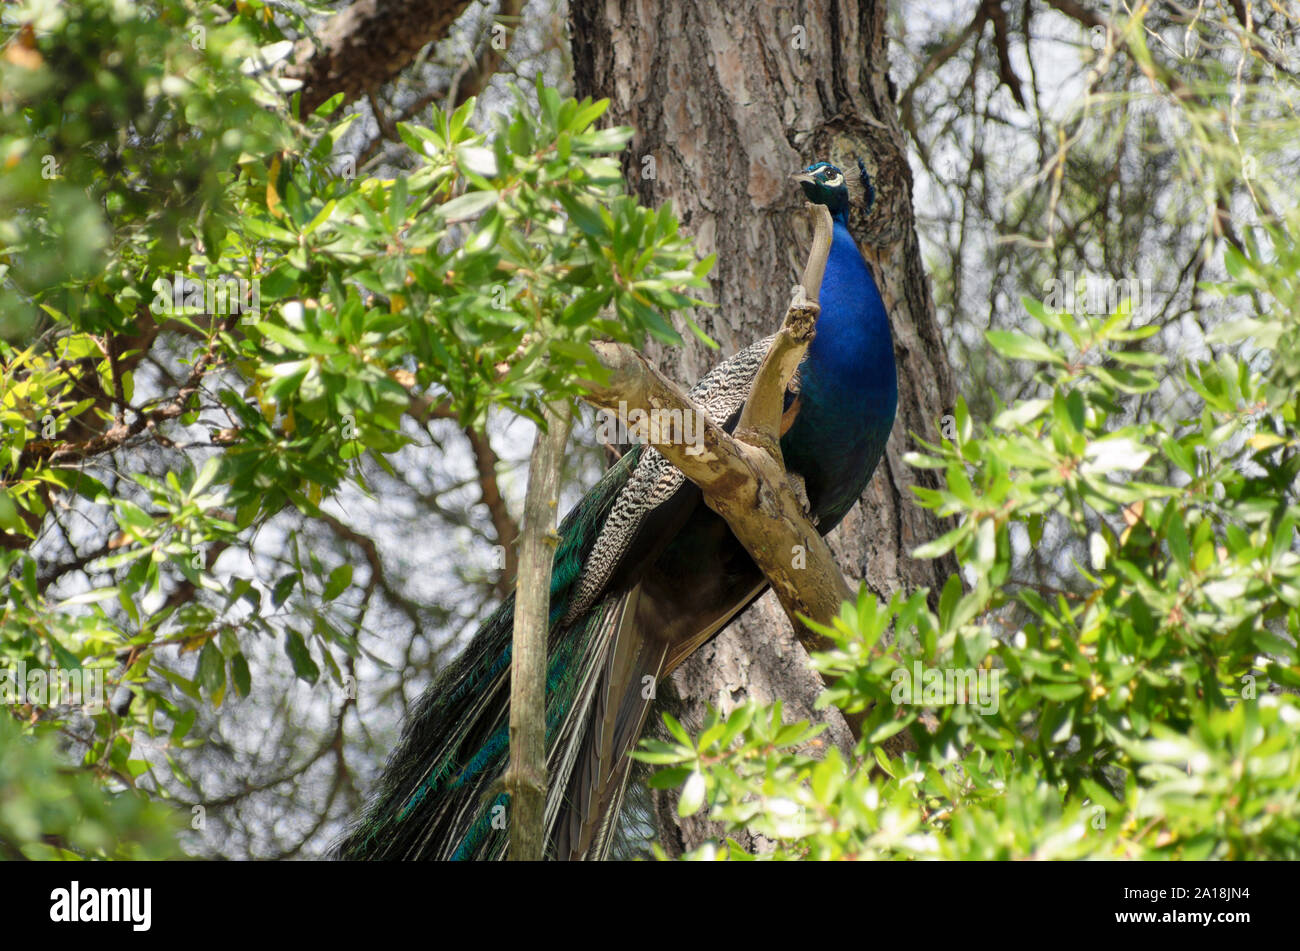 Peacock sitting on a tree branch and peering into the distance on a blurred background Stock Photo